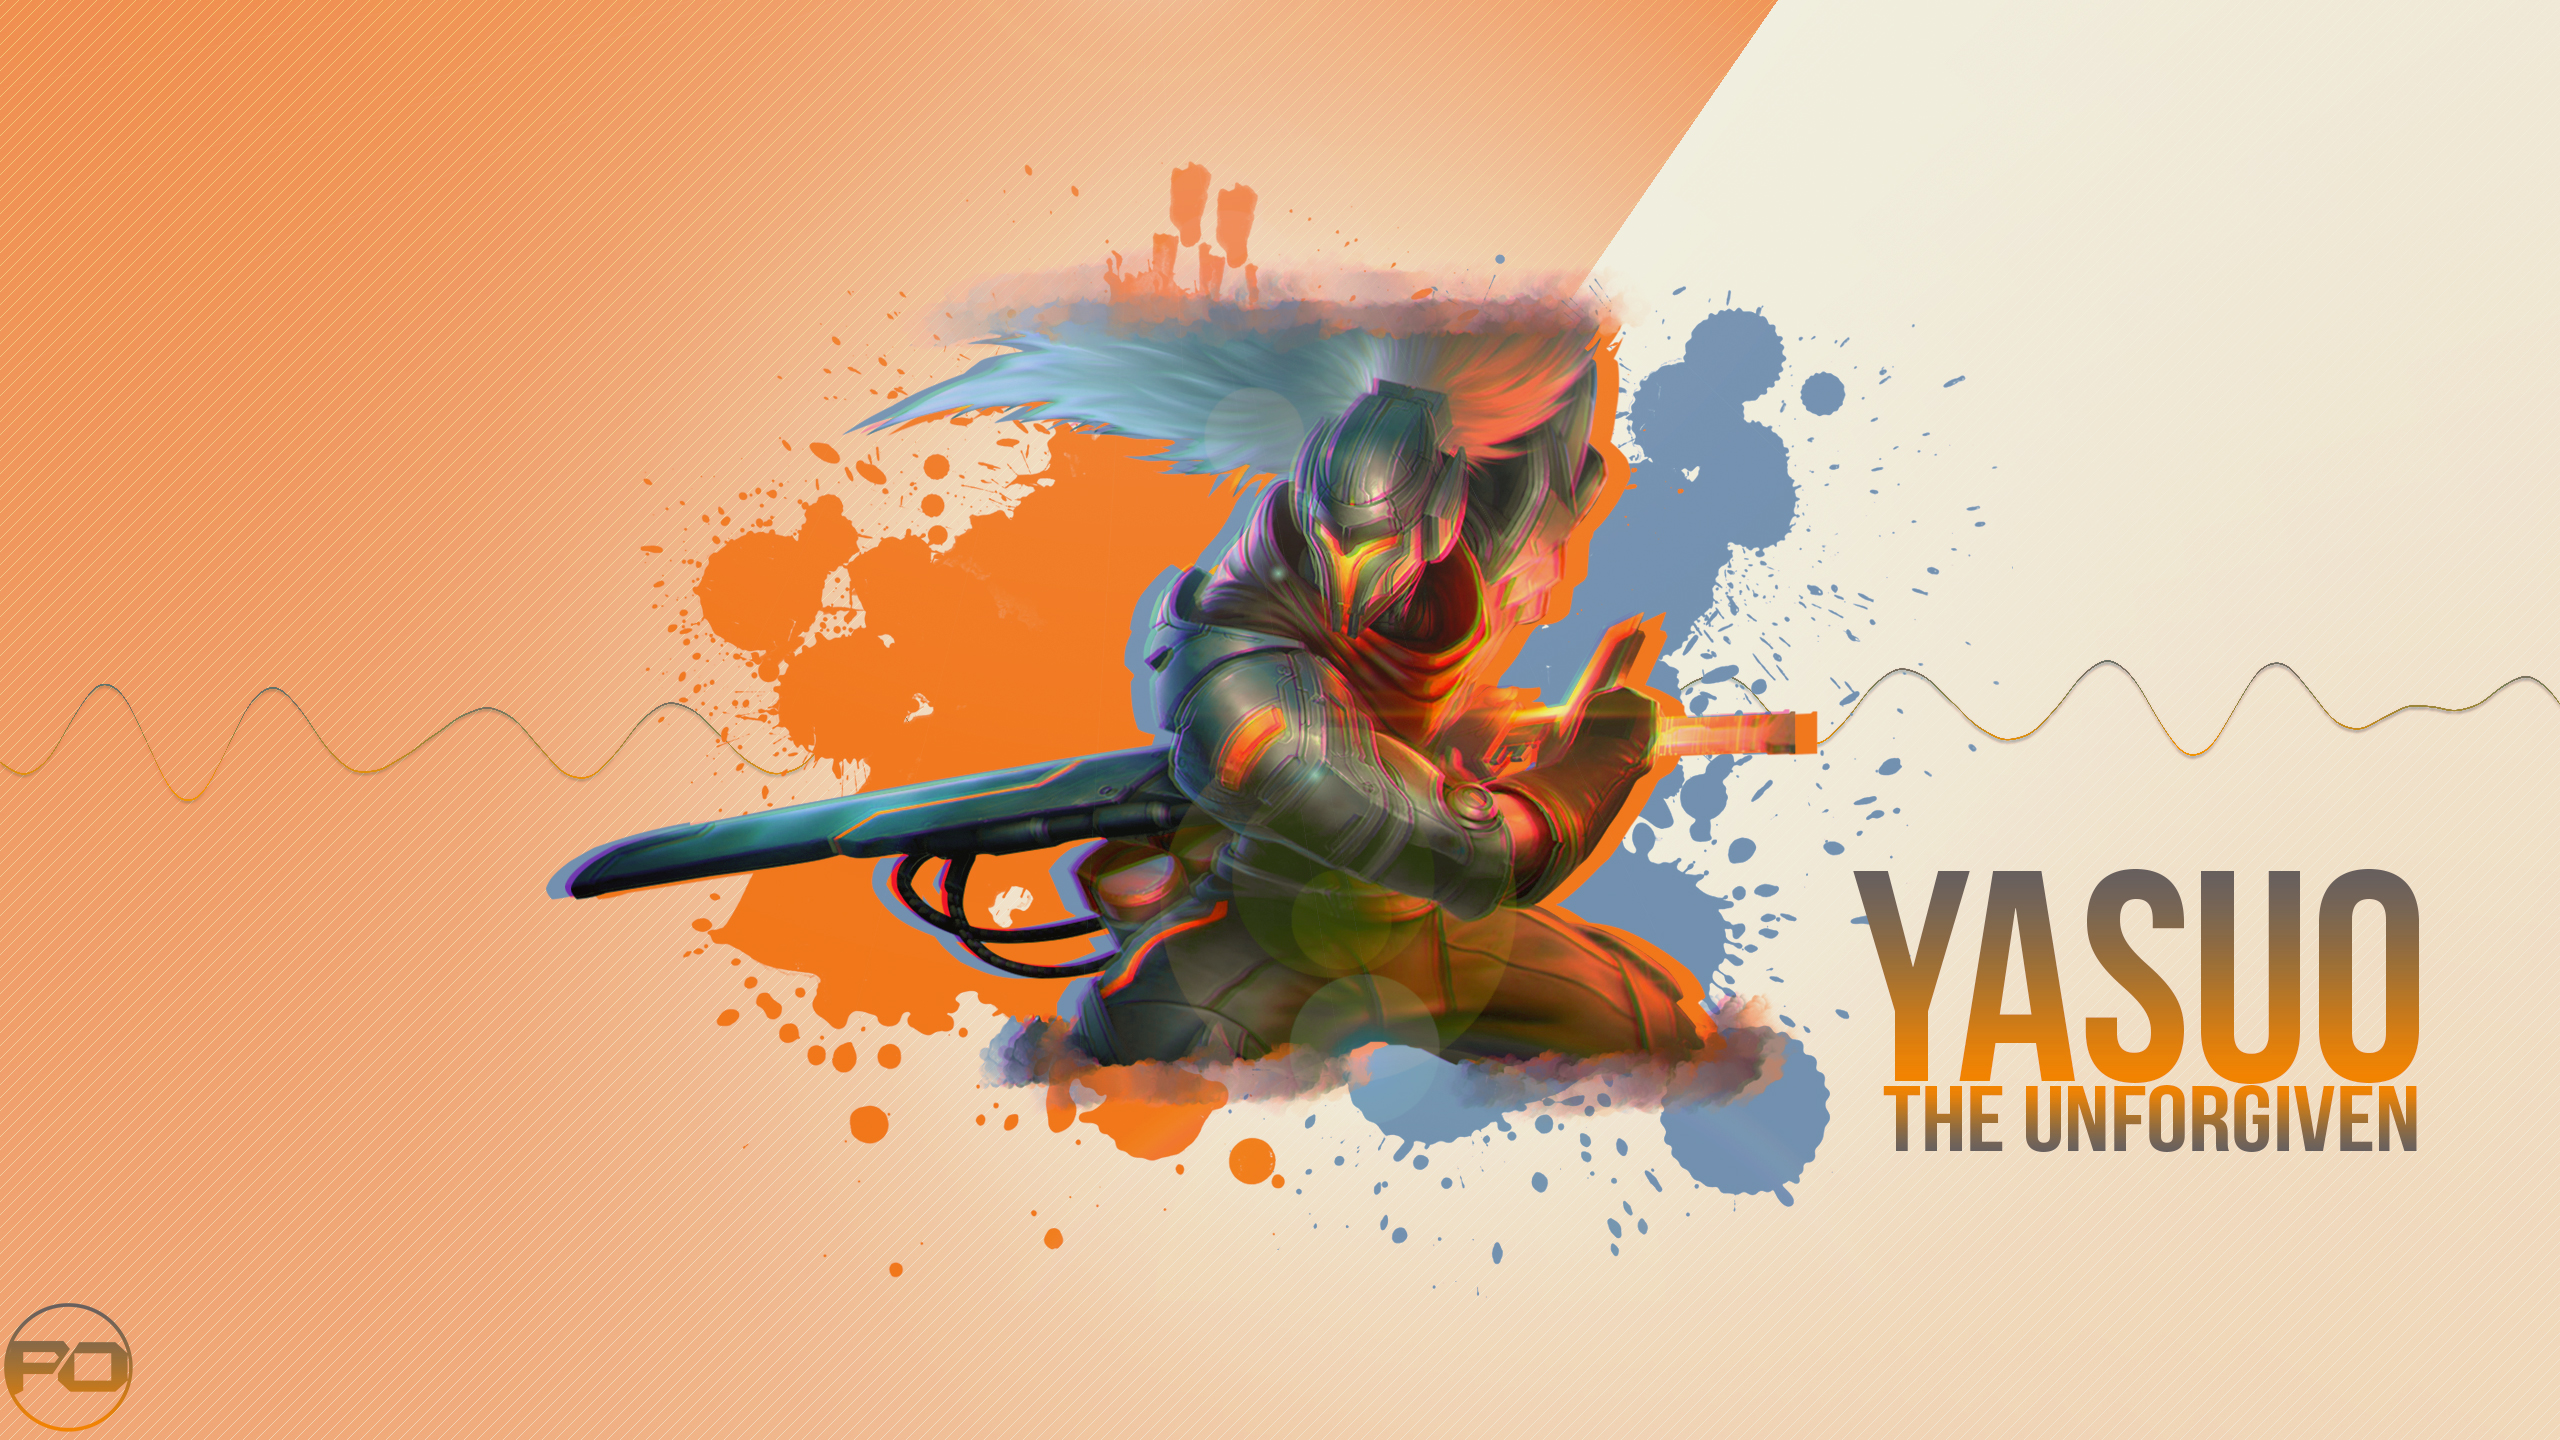 Project Yasuo wallpaper l 2560 x 1440 by PobbleD on DeviantArt